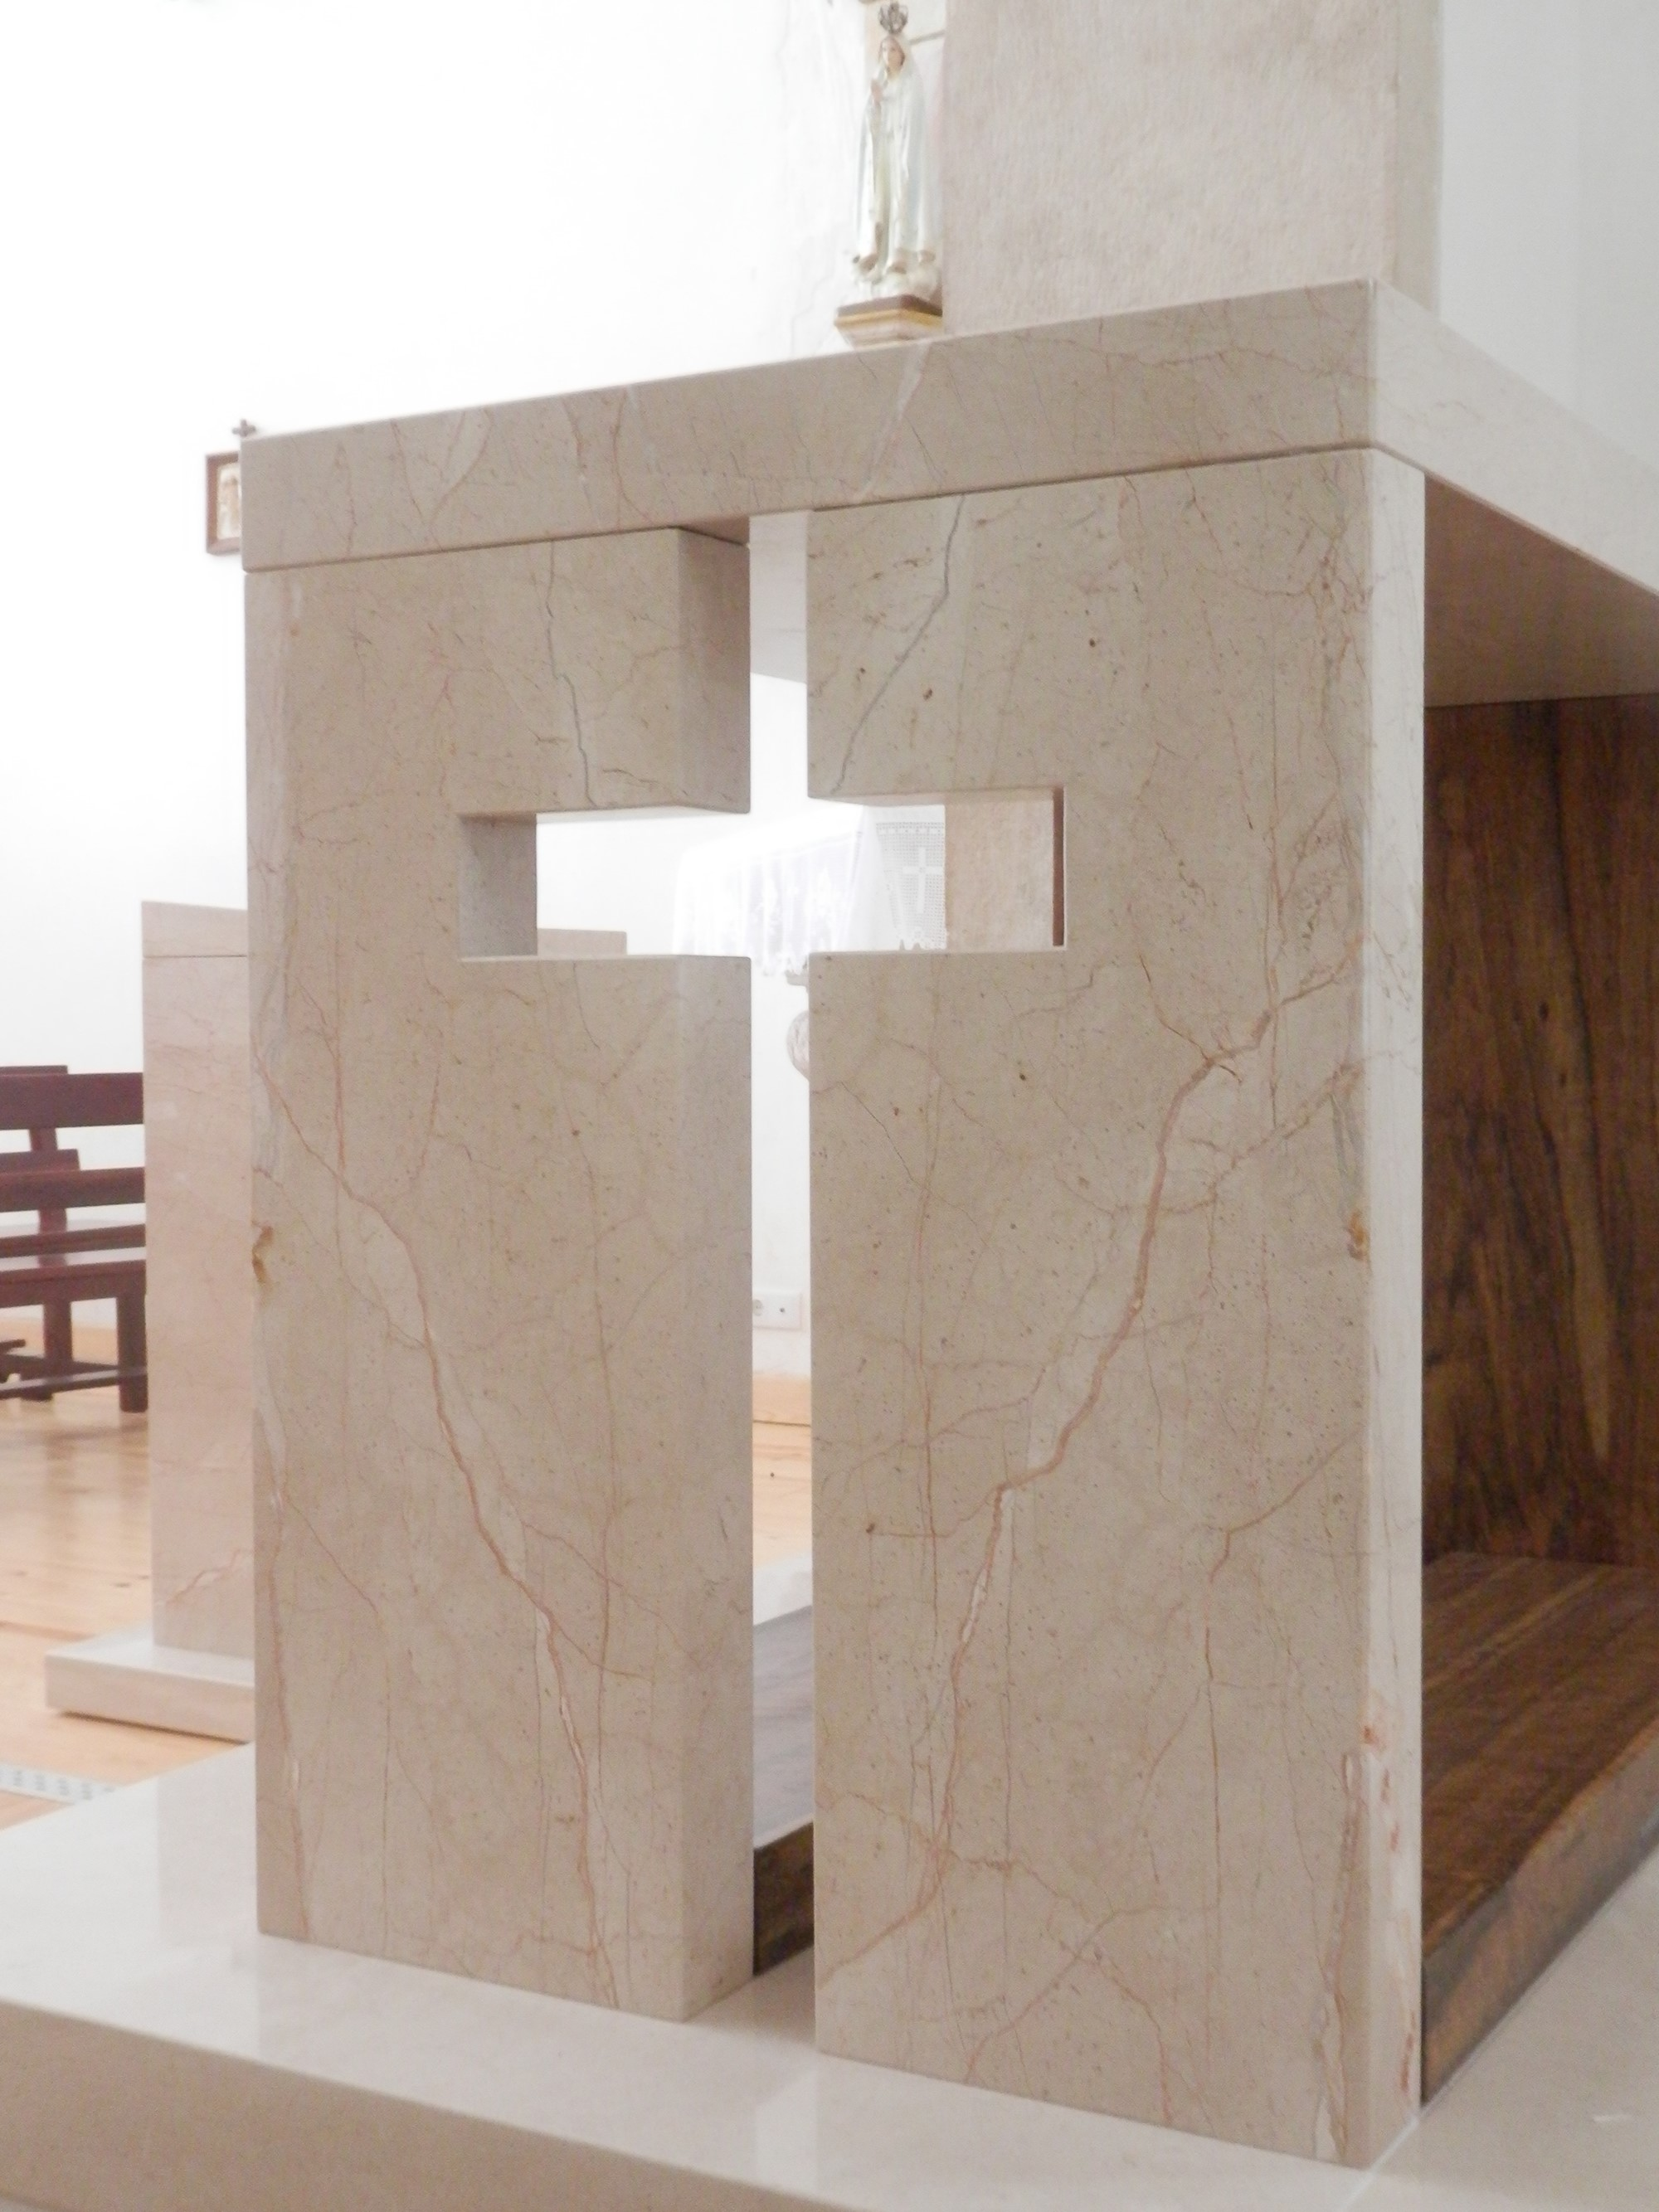 Alpenina limestone liturgical furniture